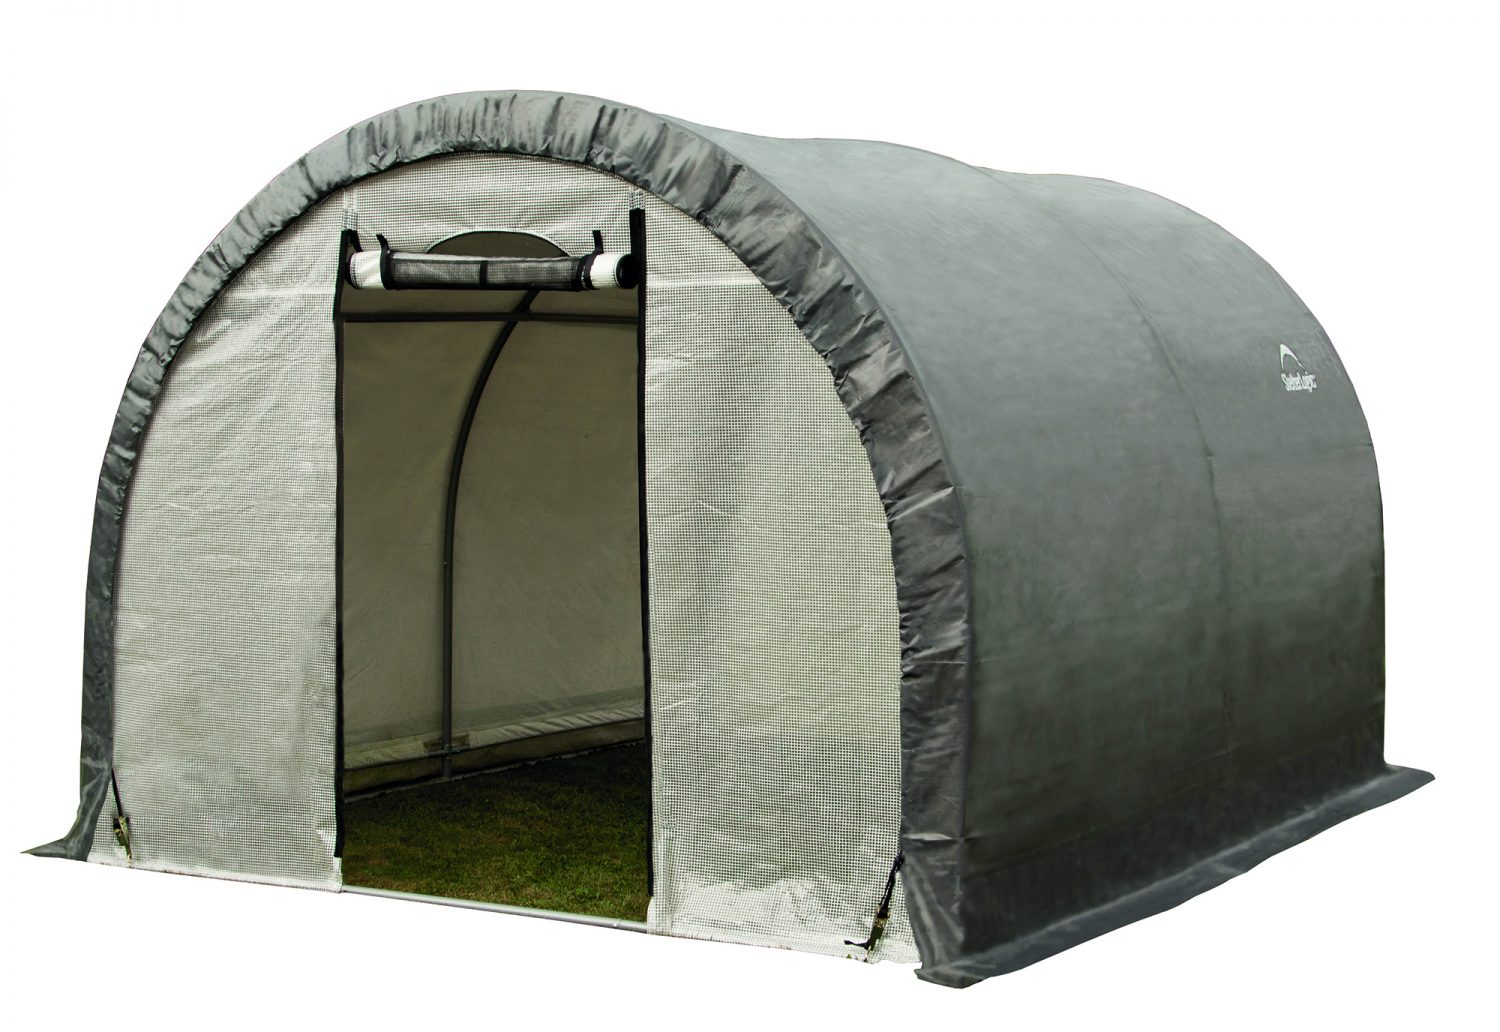 Shelter Culti Abris 18 m² | Stockdeal | New | Shelter